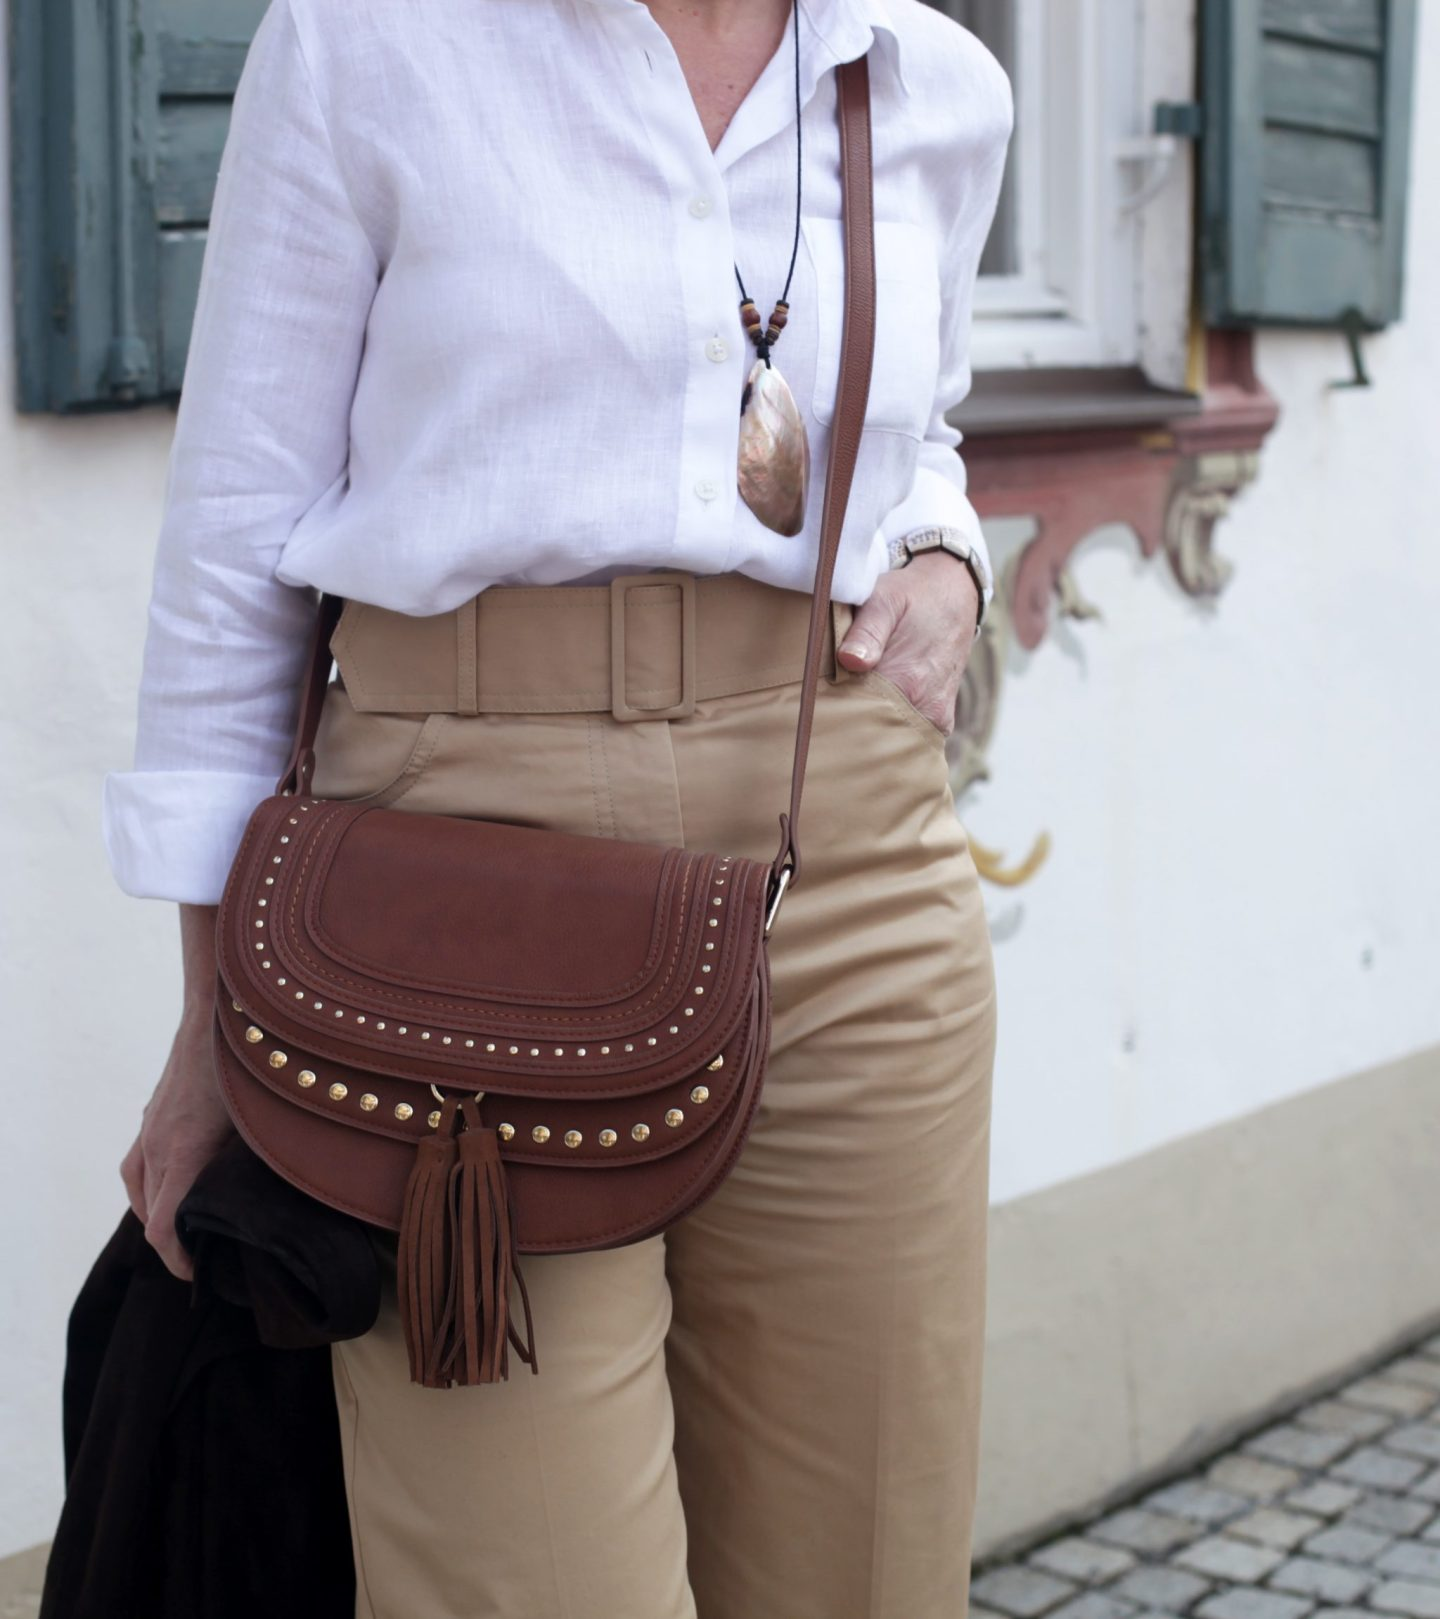 Highwaist Paperbag Hose Safari Leinenhemd 50plus LadyofStyle